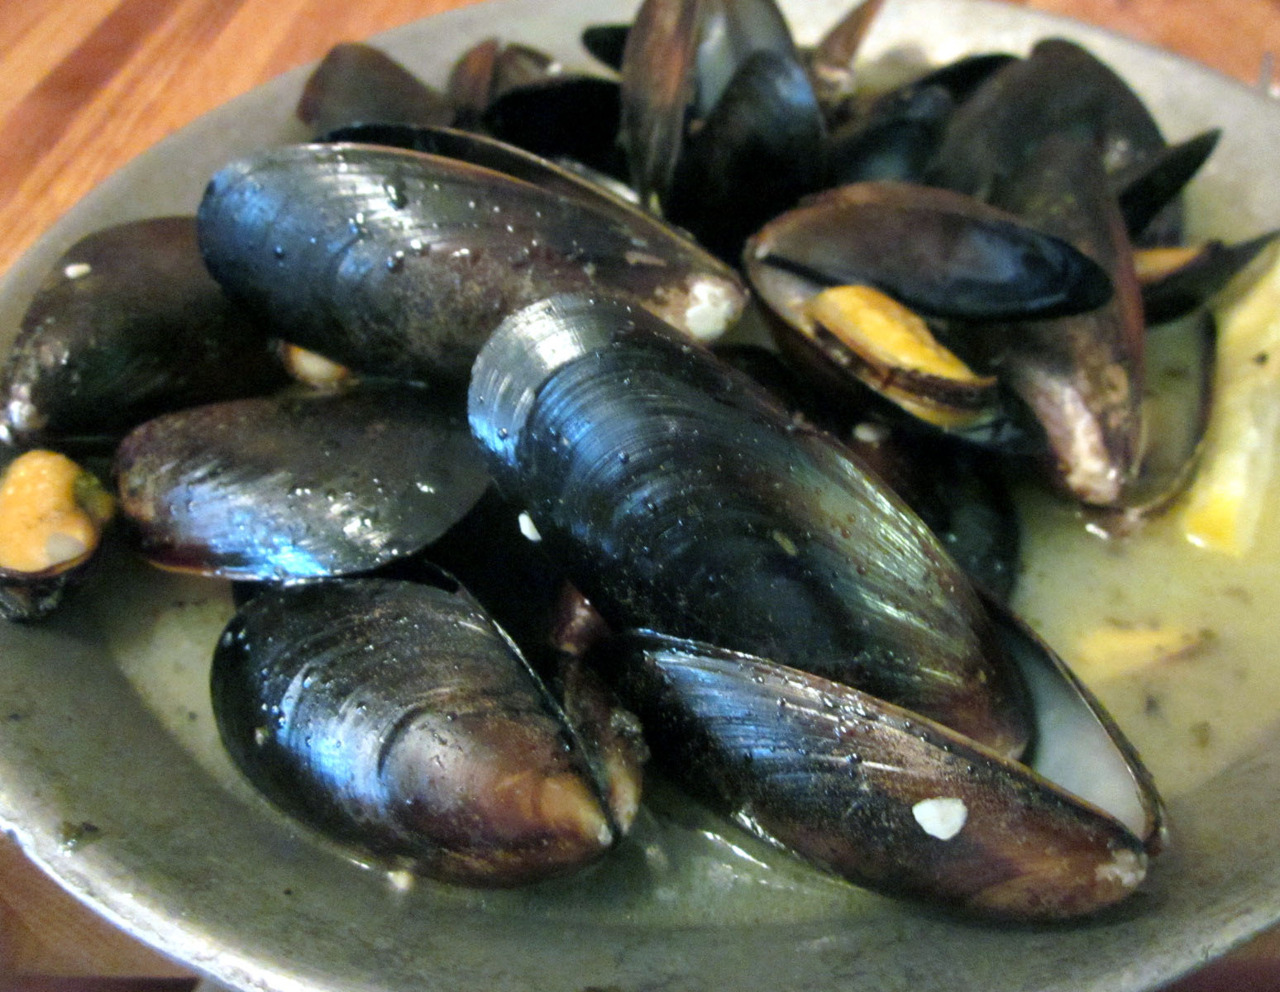 Garlic Steamed Clams at MJ's Raw Bar and Grille in New Bern, NC There was so much juice to soak up that I had to ask for more rolls. Lots of fun to eat. My shirt did not seem to enjoy it as much as I did, though.